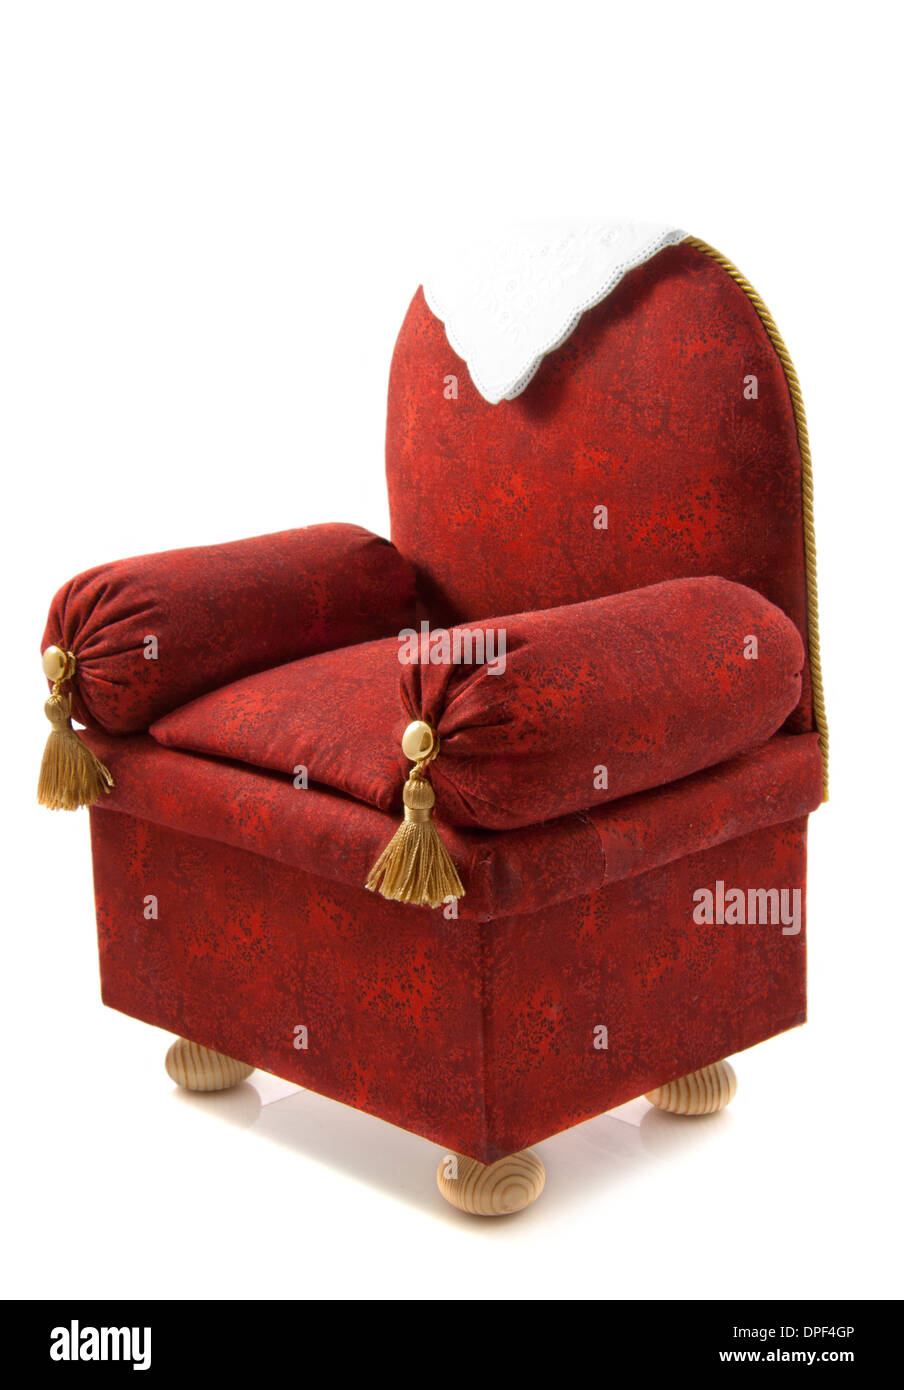 Handmade Brown Red Chair With Decoration Isolated Over White   Stock Image